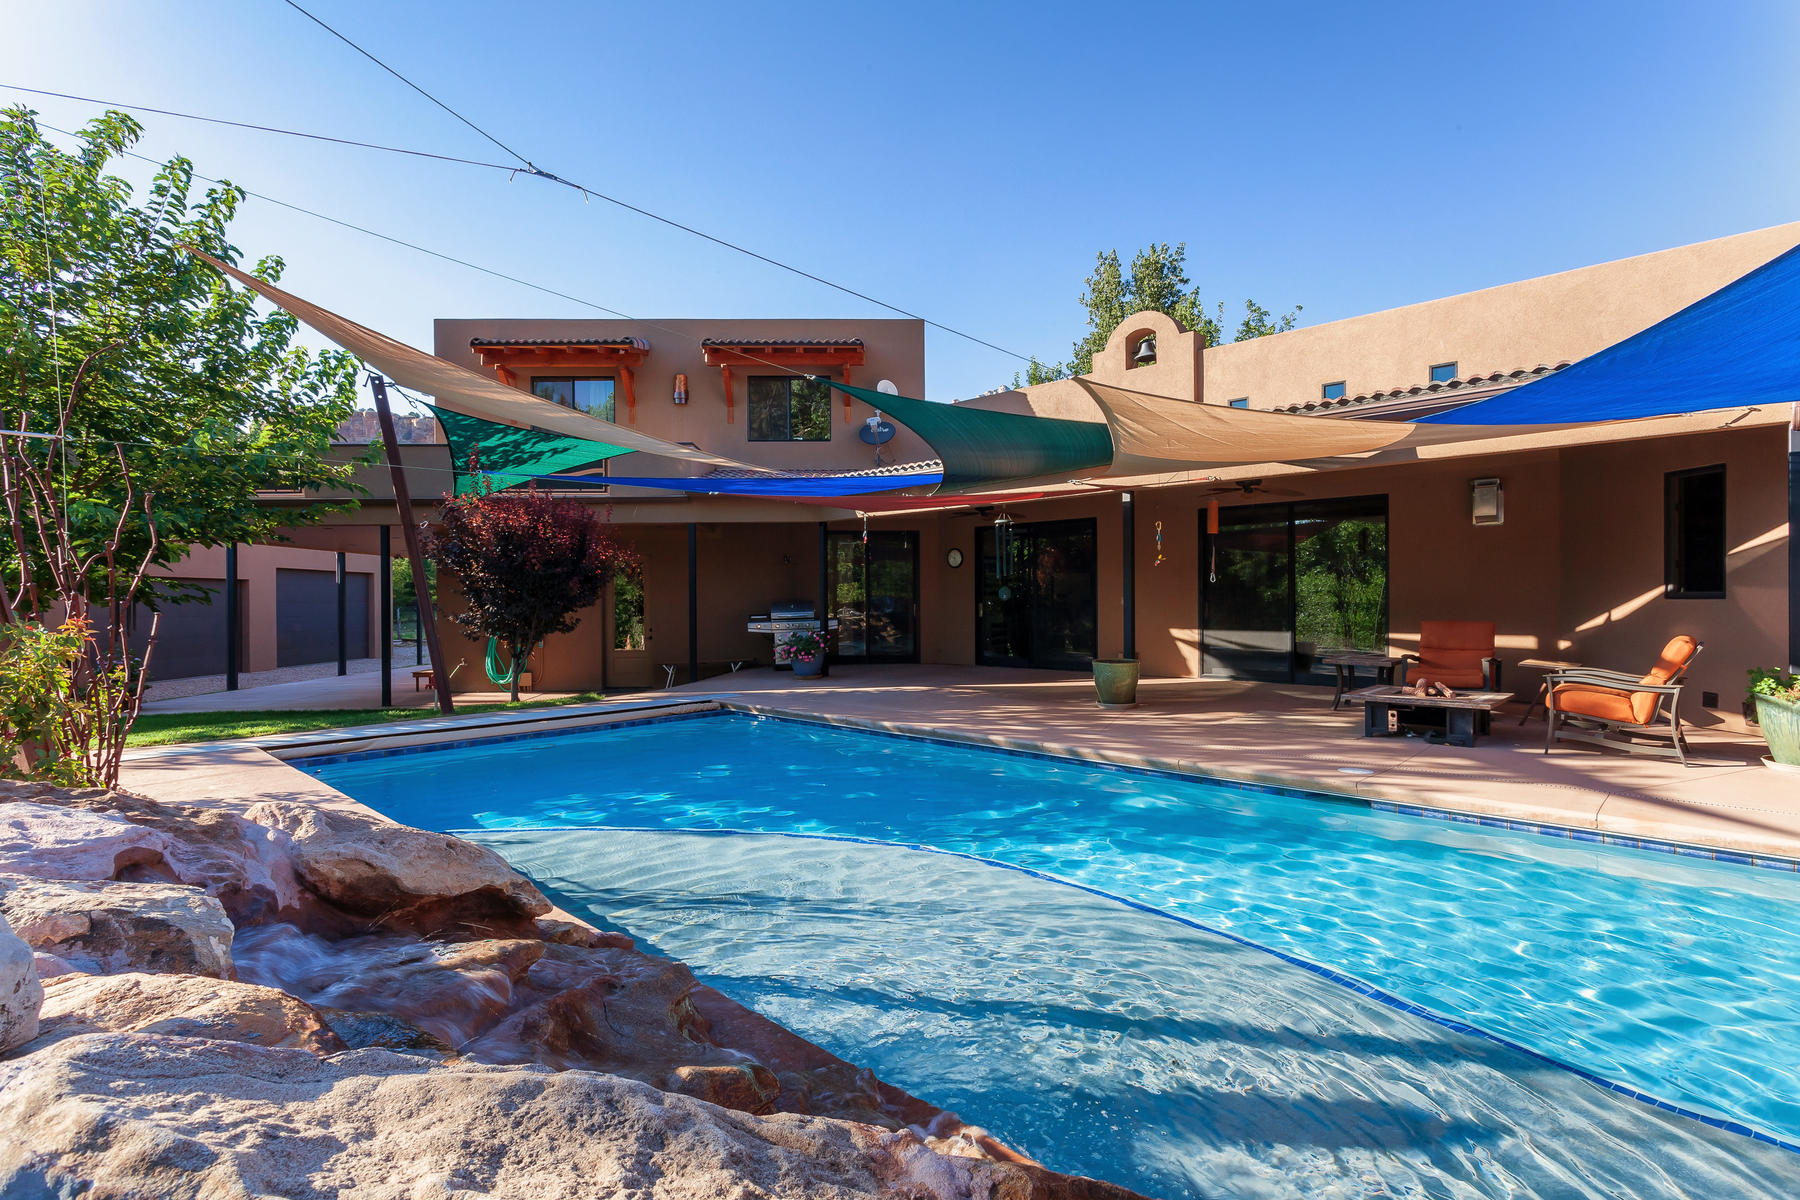 Additional photo for property listing at Zion River Sanctuary 98 Bridge Rd Rockville, Utah 84763 United States